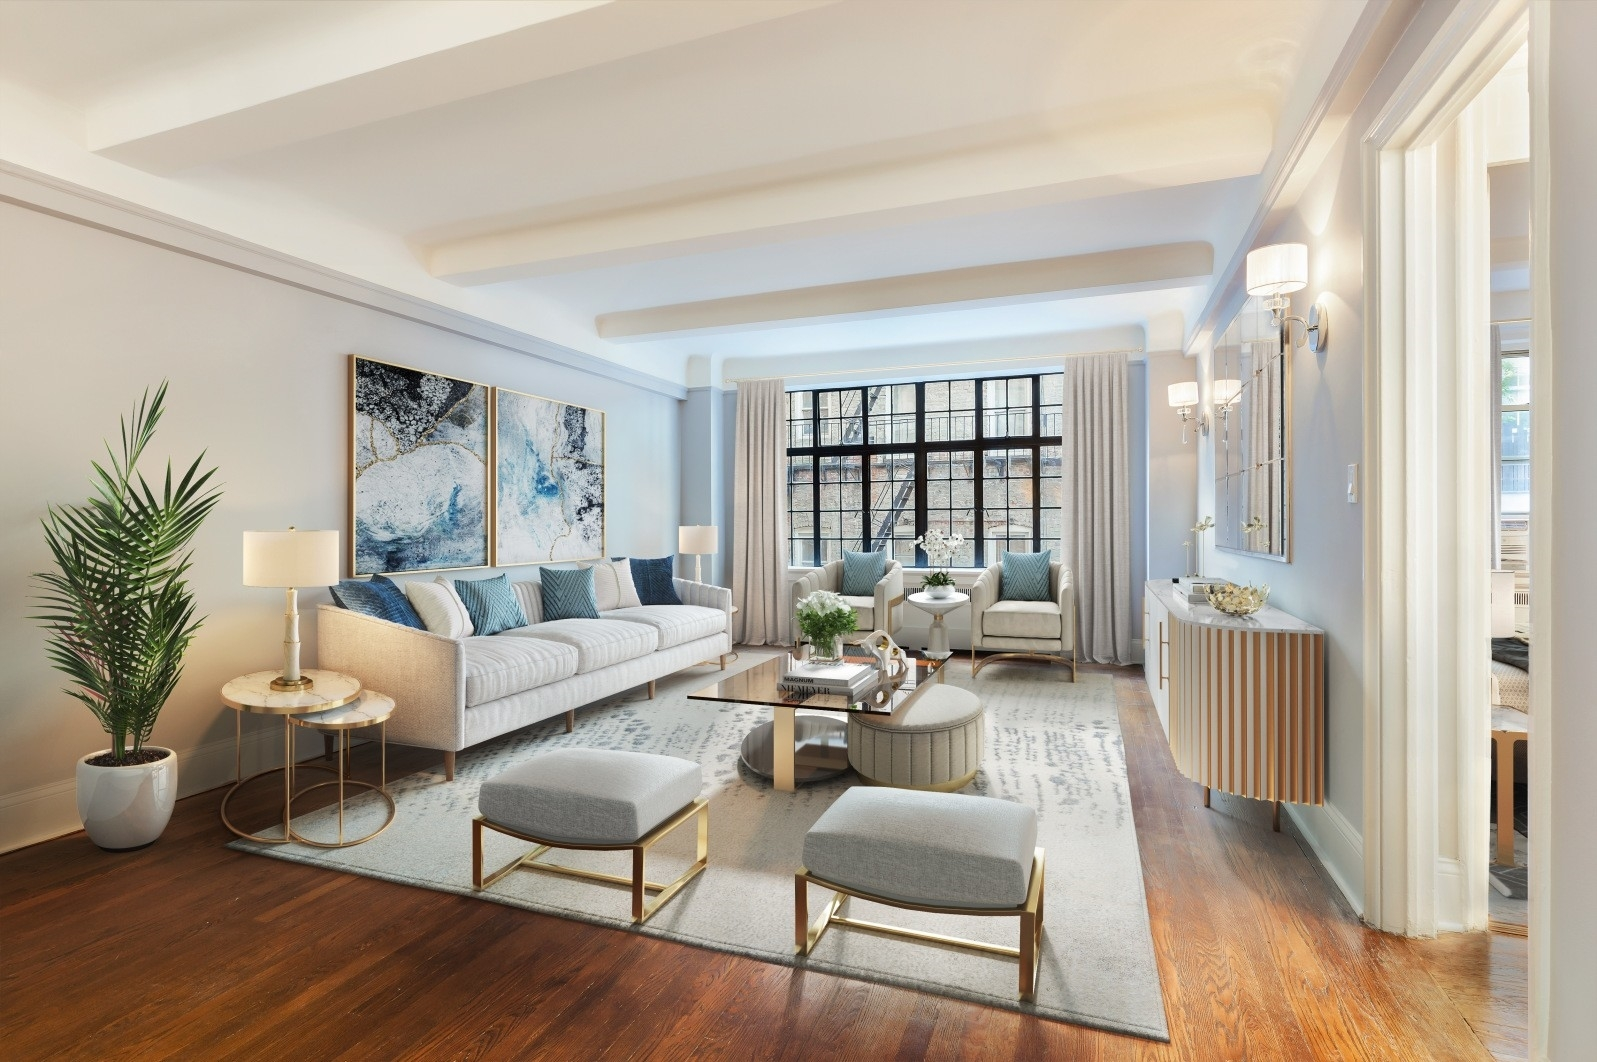 1. Co-op Properties for Sale at GRAMERCY OWNERS LTD, 44 Gramercy Park North, 4D Gramercy Park, New York, NY 10010